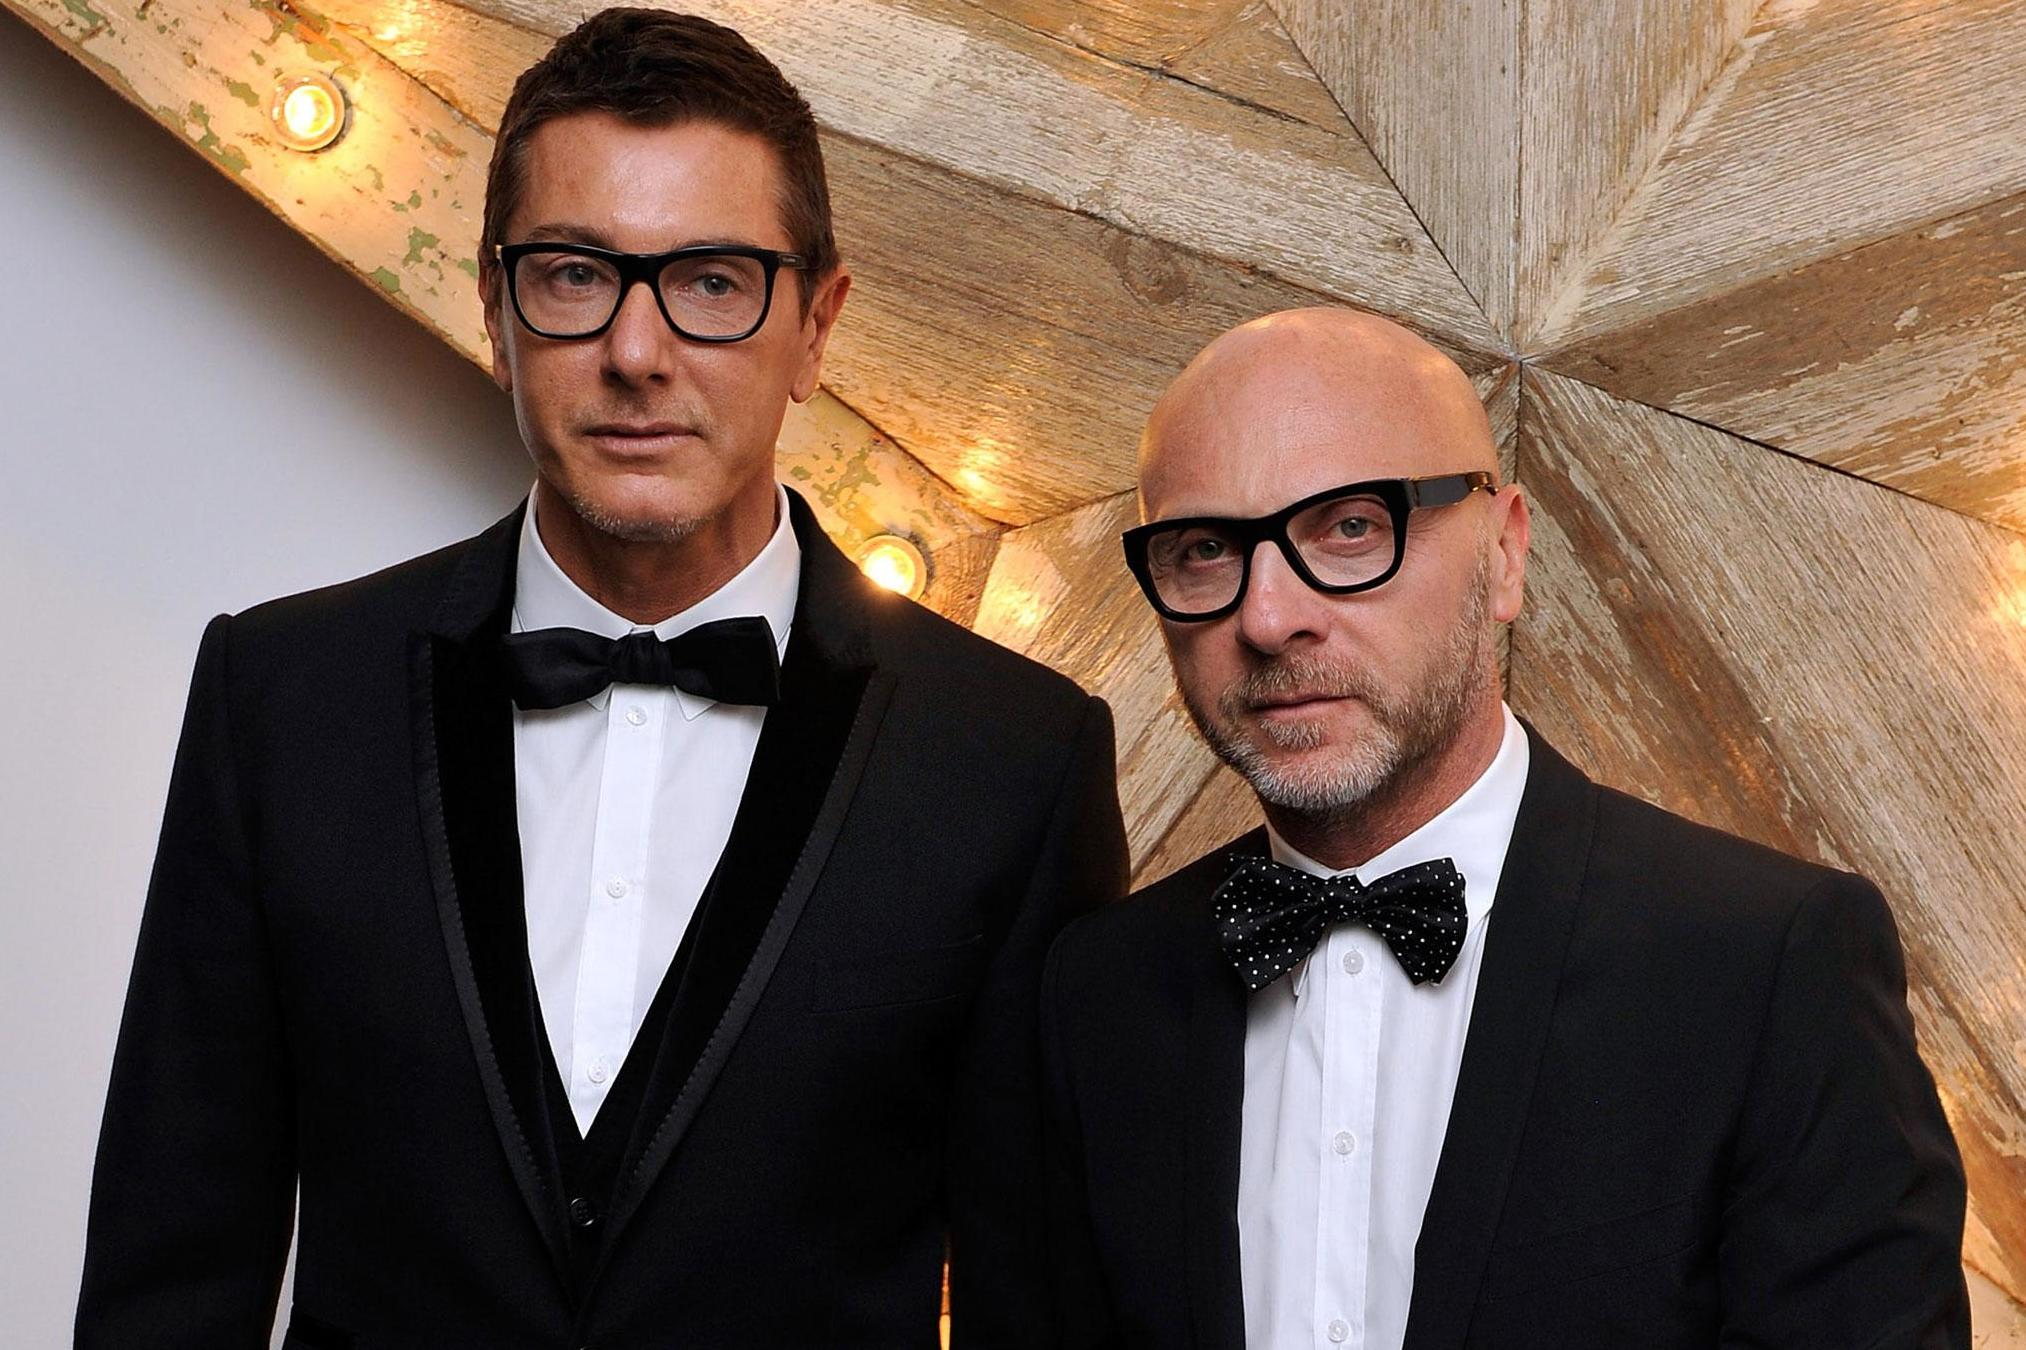 Stefano Gabbana Homosexual Dolce And Gabbana Co Founder Denounces Use Of Gay As A Label The Independent The Independent